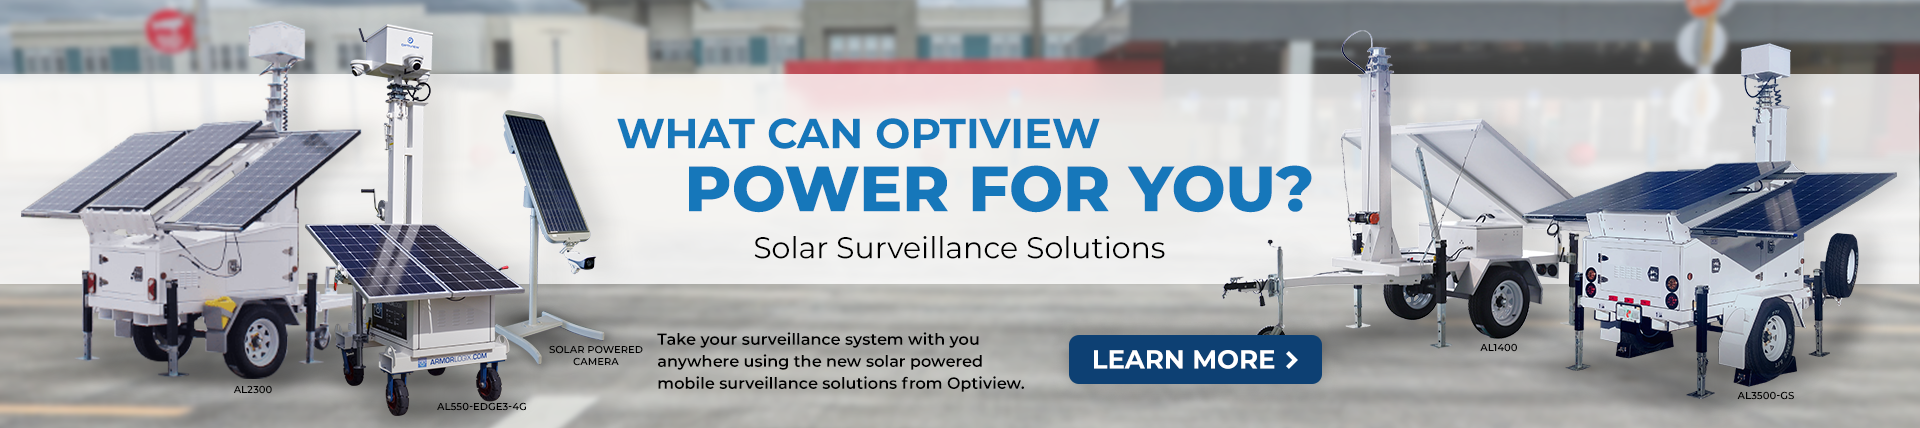 What can Optiview Power for you?